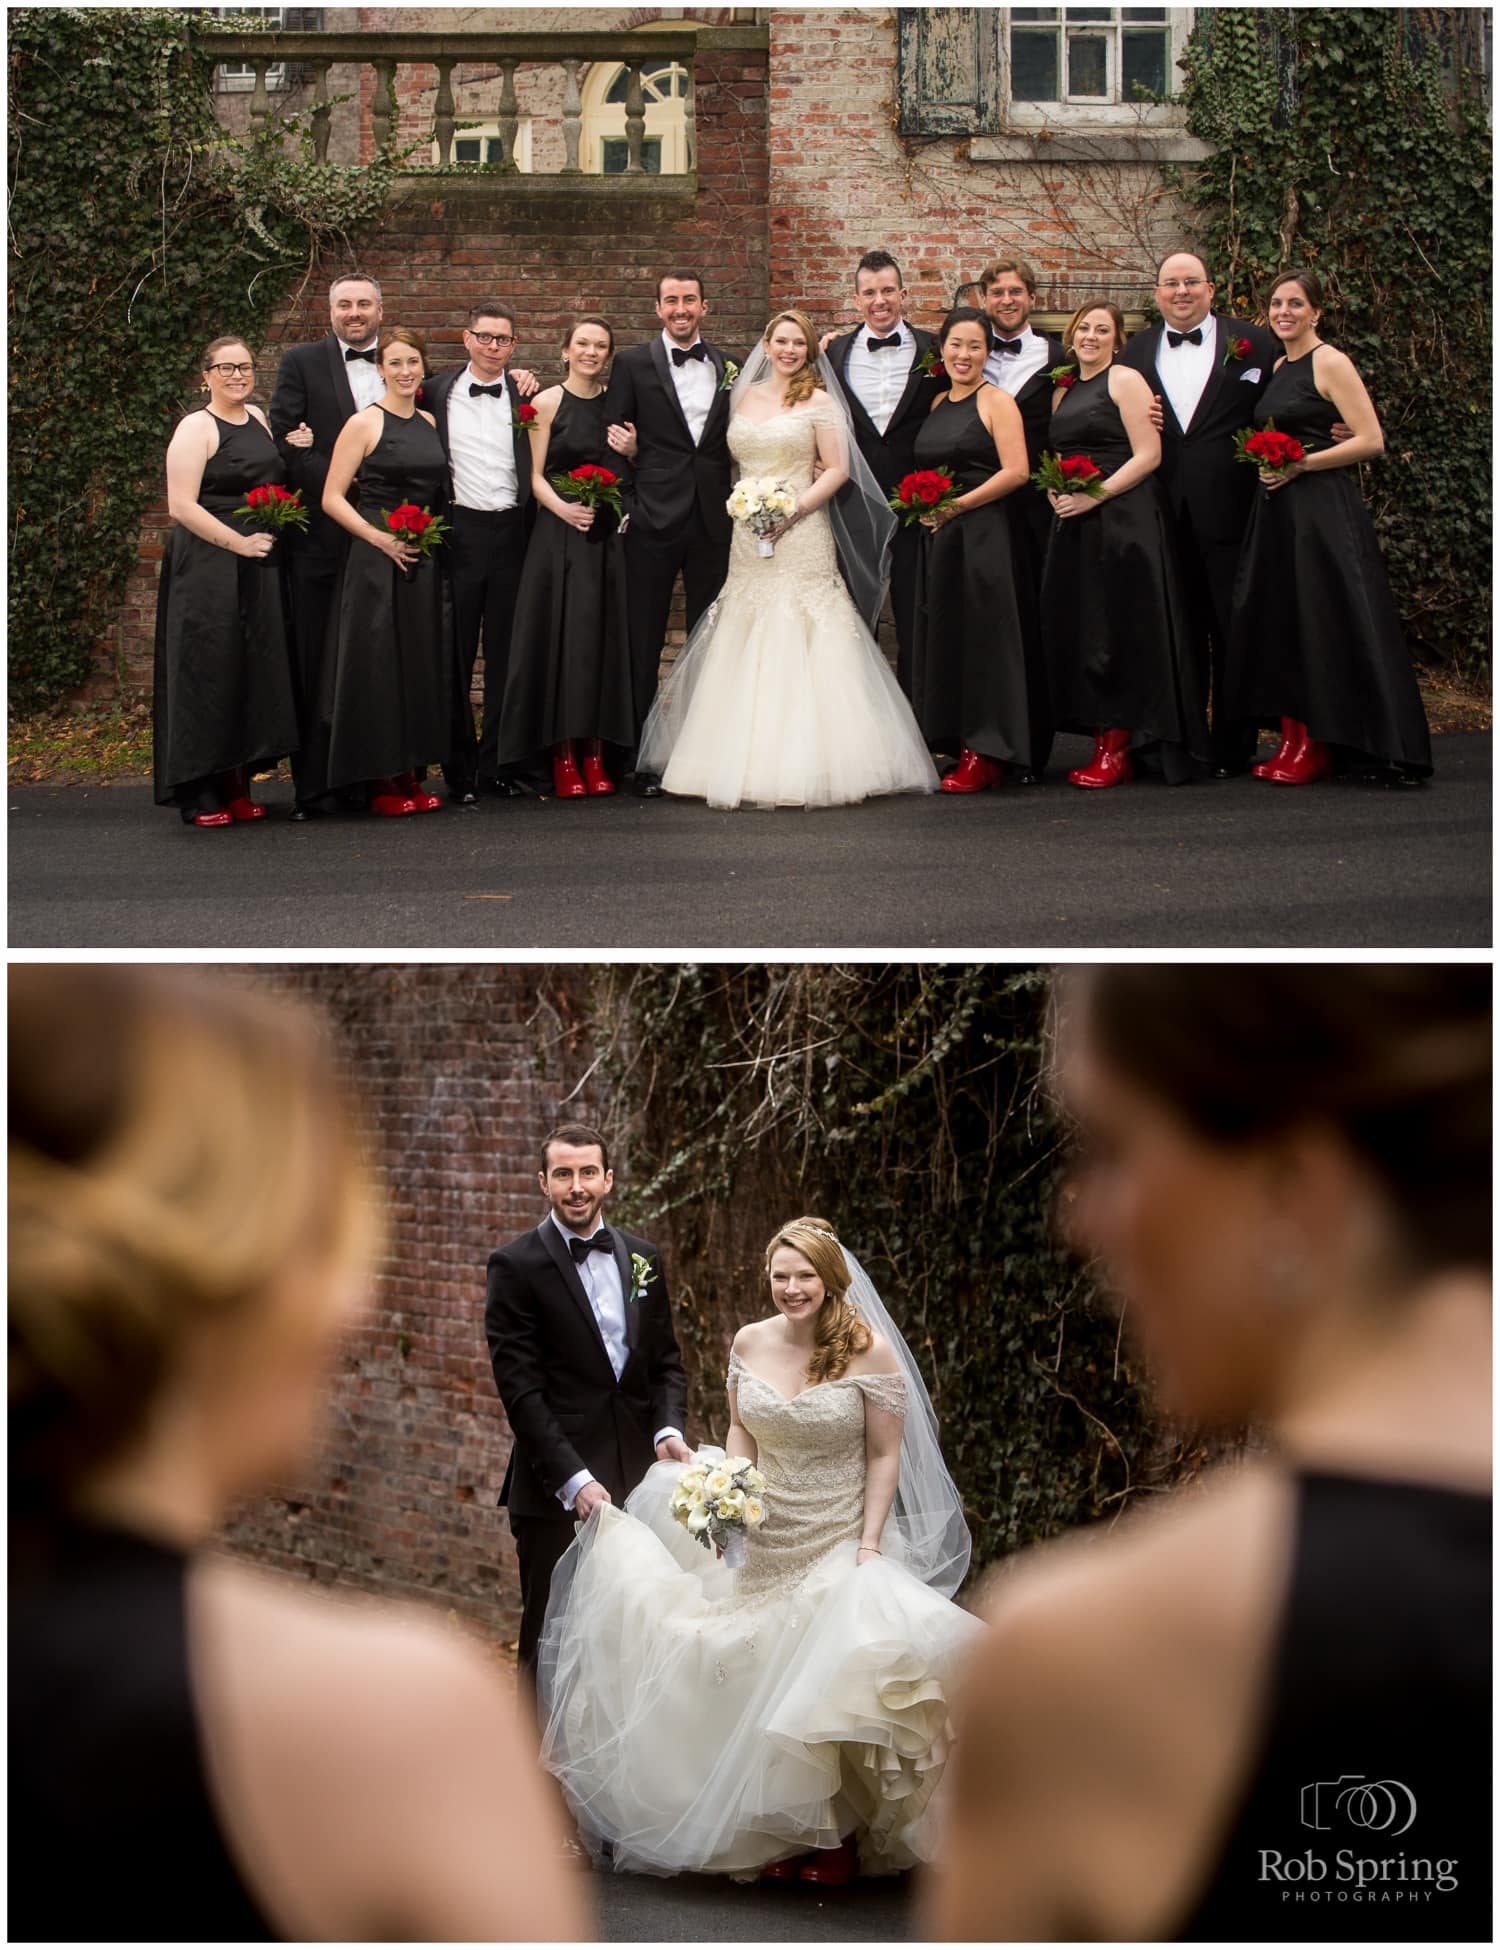 red uggs boots bridal party, red flowers, black bridesmaids dresses, winter Glen Sanders Mansion Wedding photographer